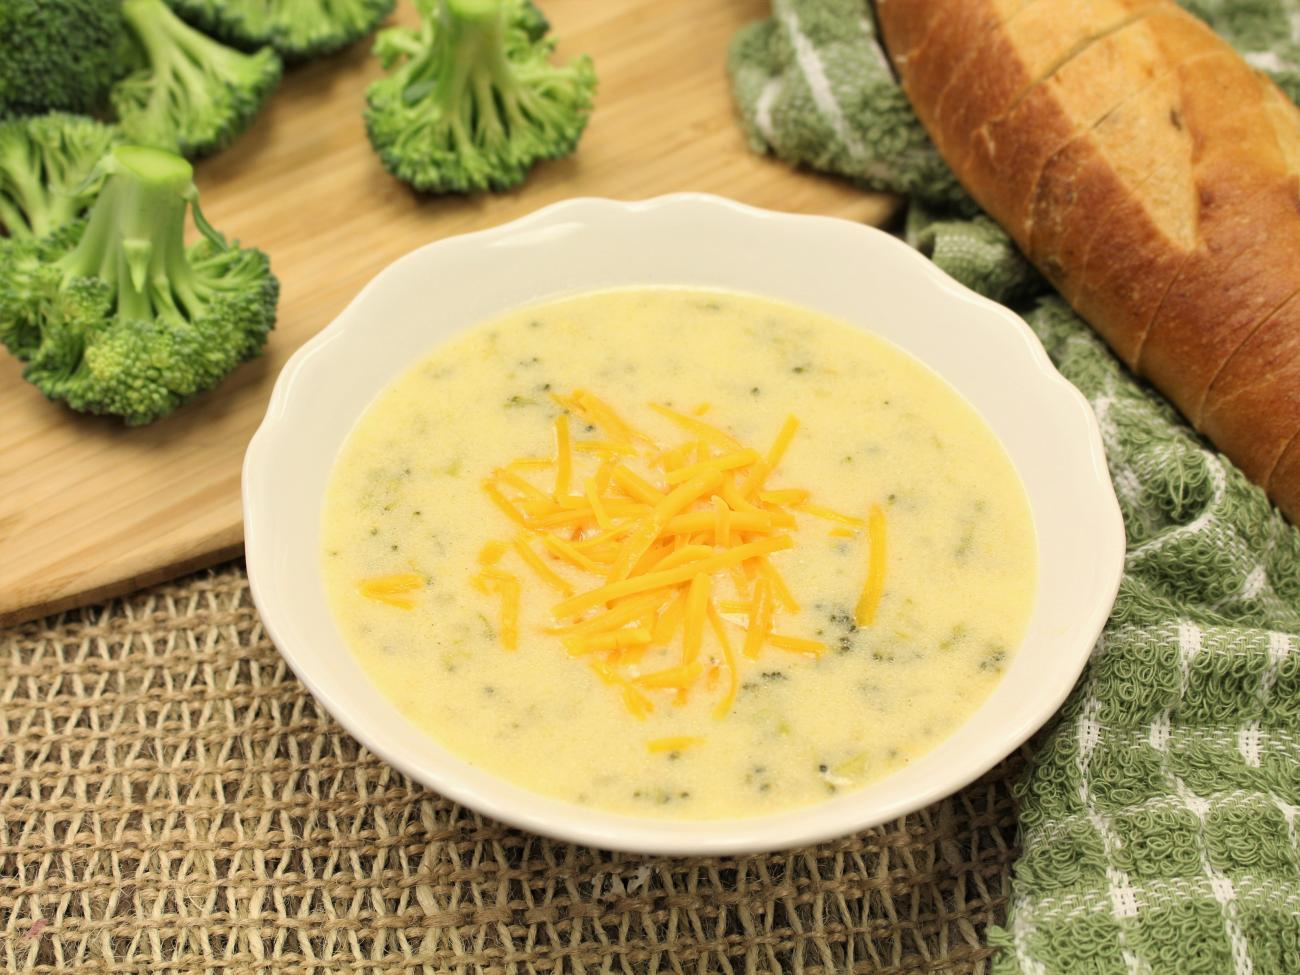 Recipe for Cream of Broccoli Soup